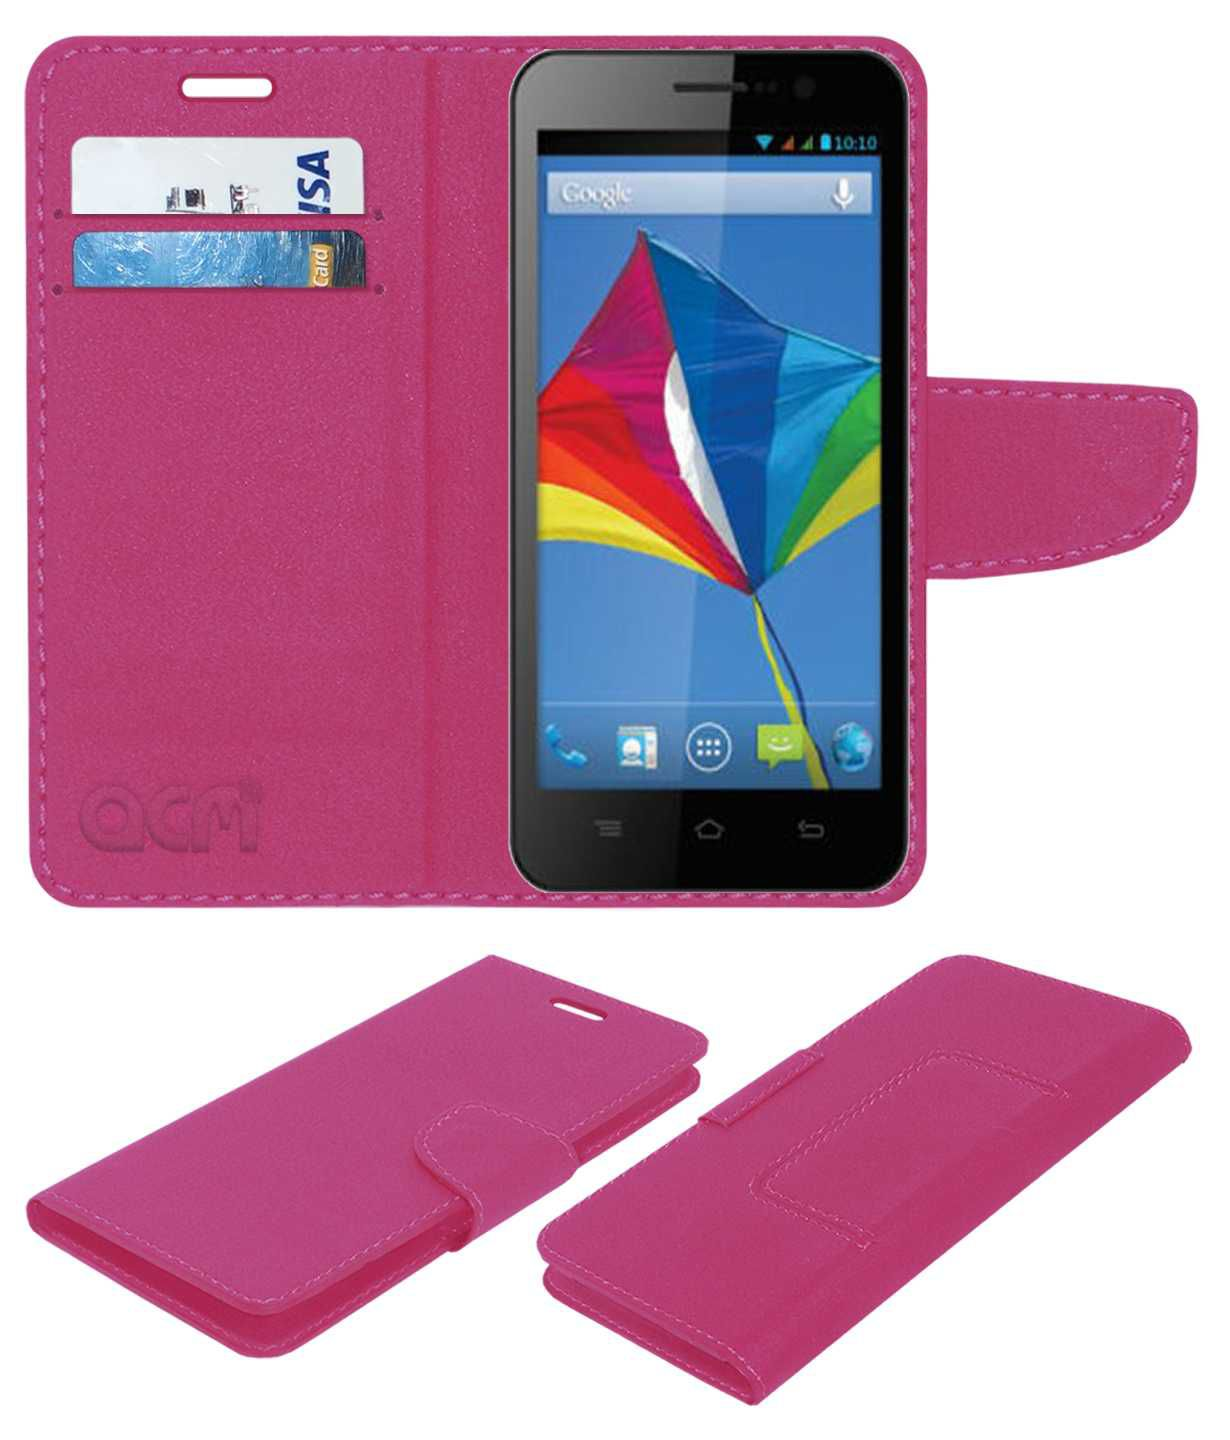 Videocon A55Q HD Flip Cover by ACM - Pink